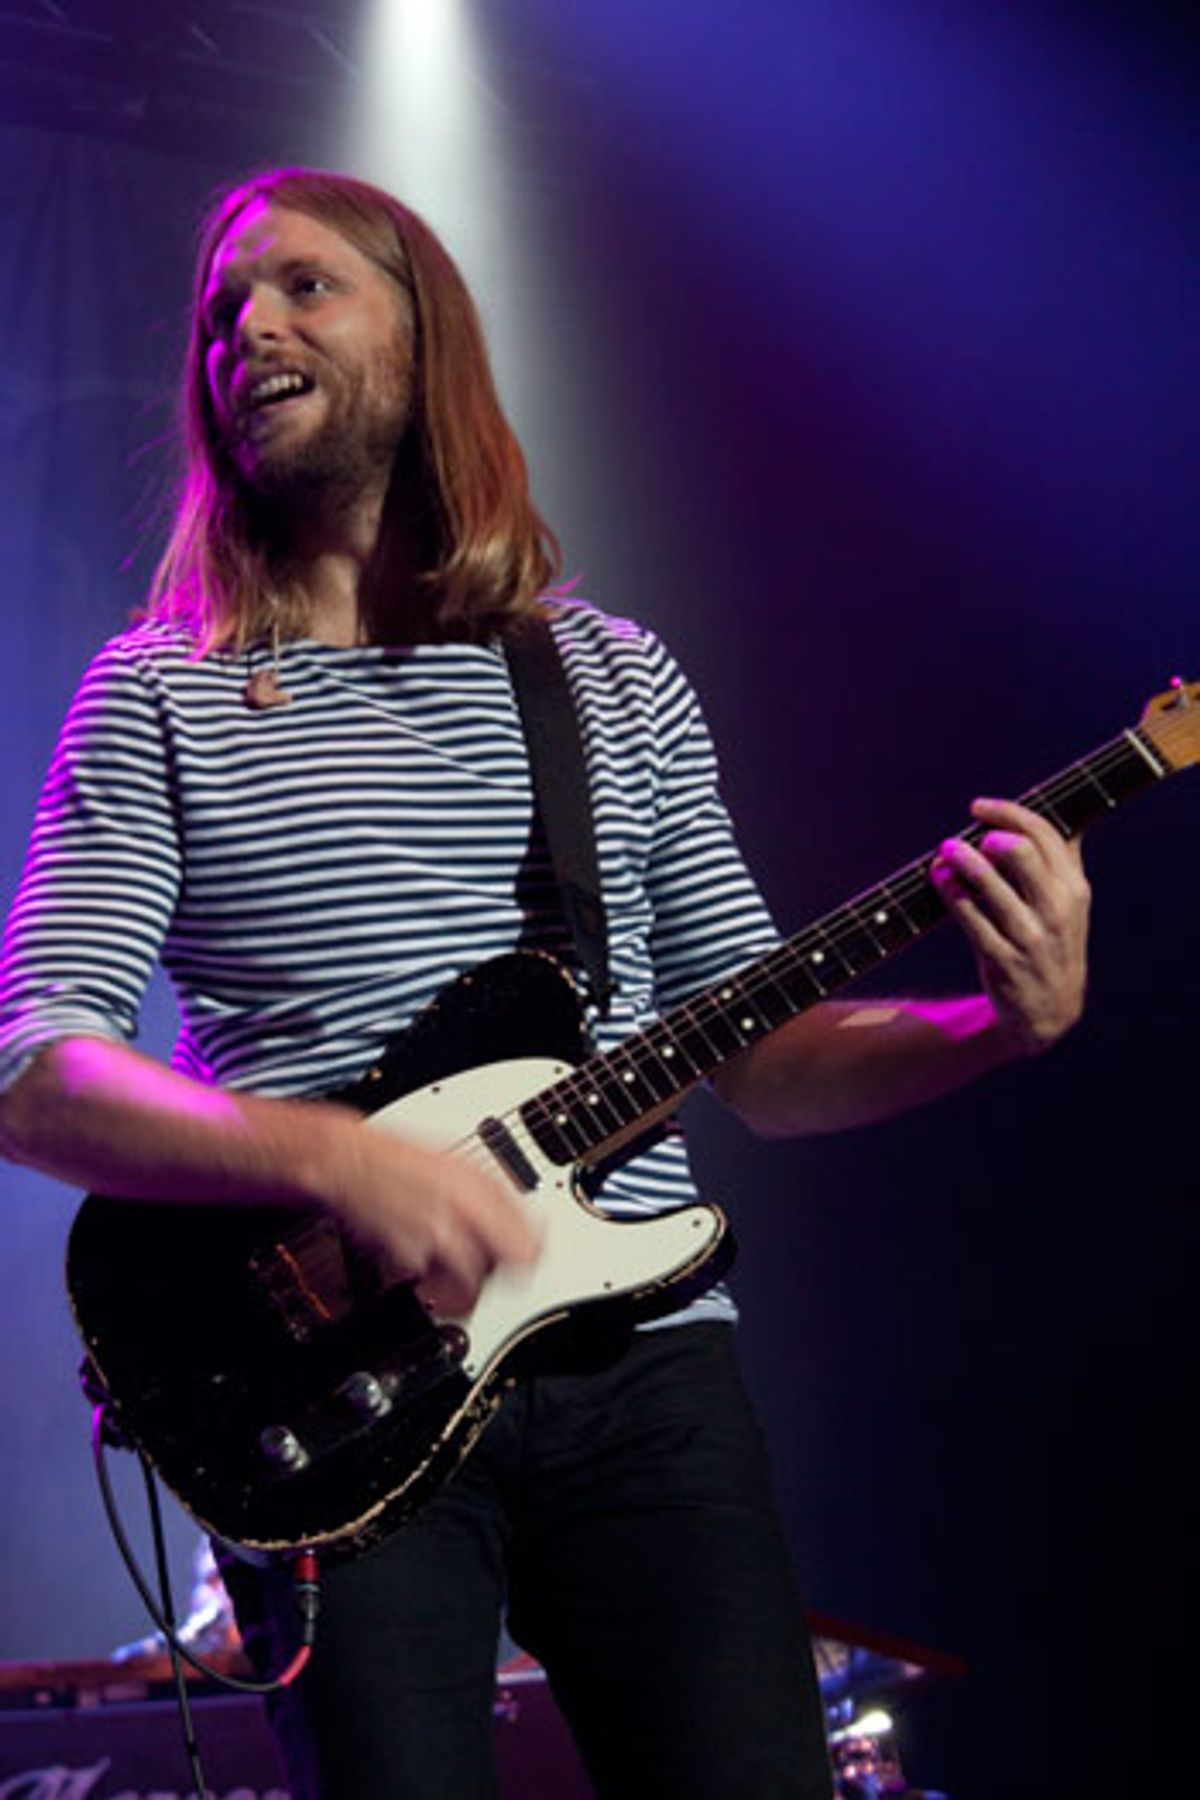 Interview: James Valentine (Maroon 5) - Hands All Over